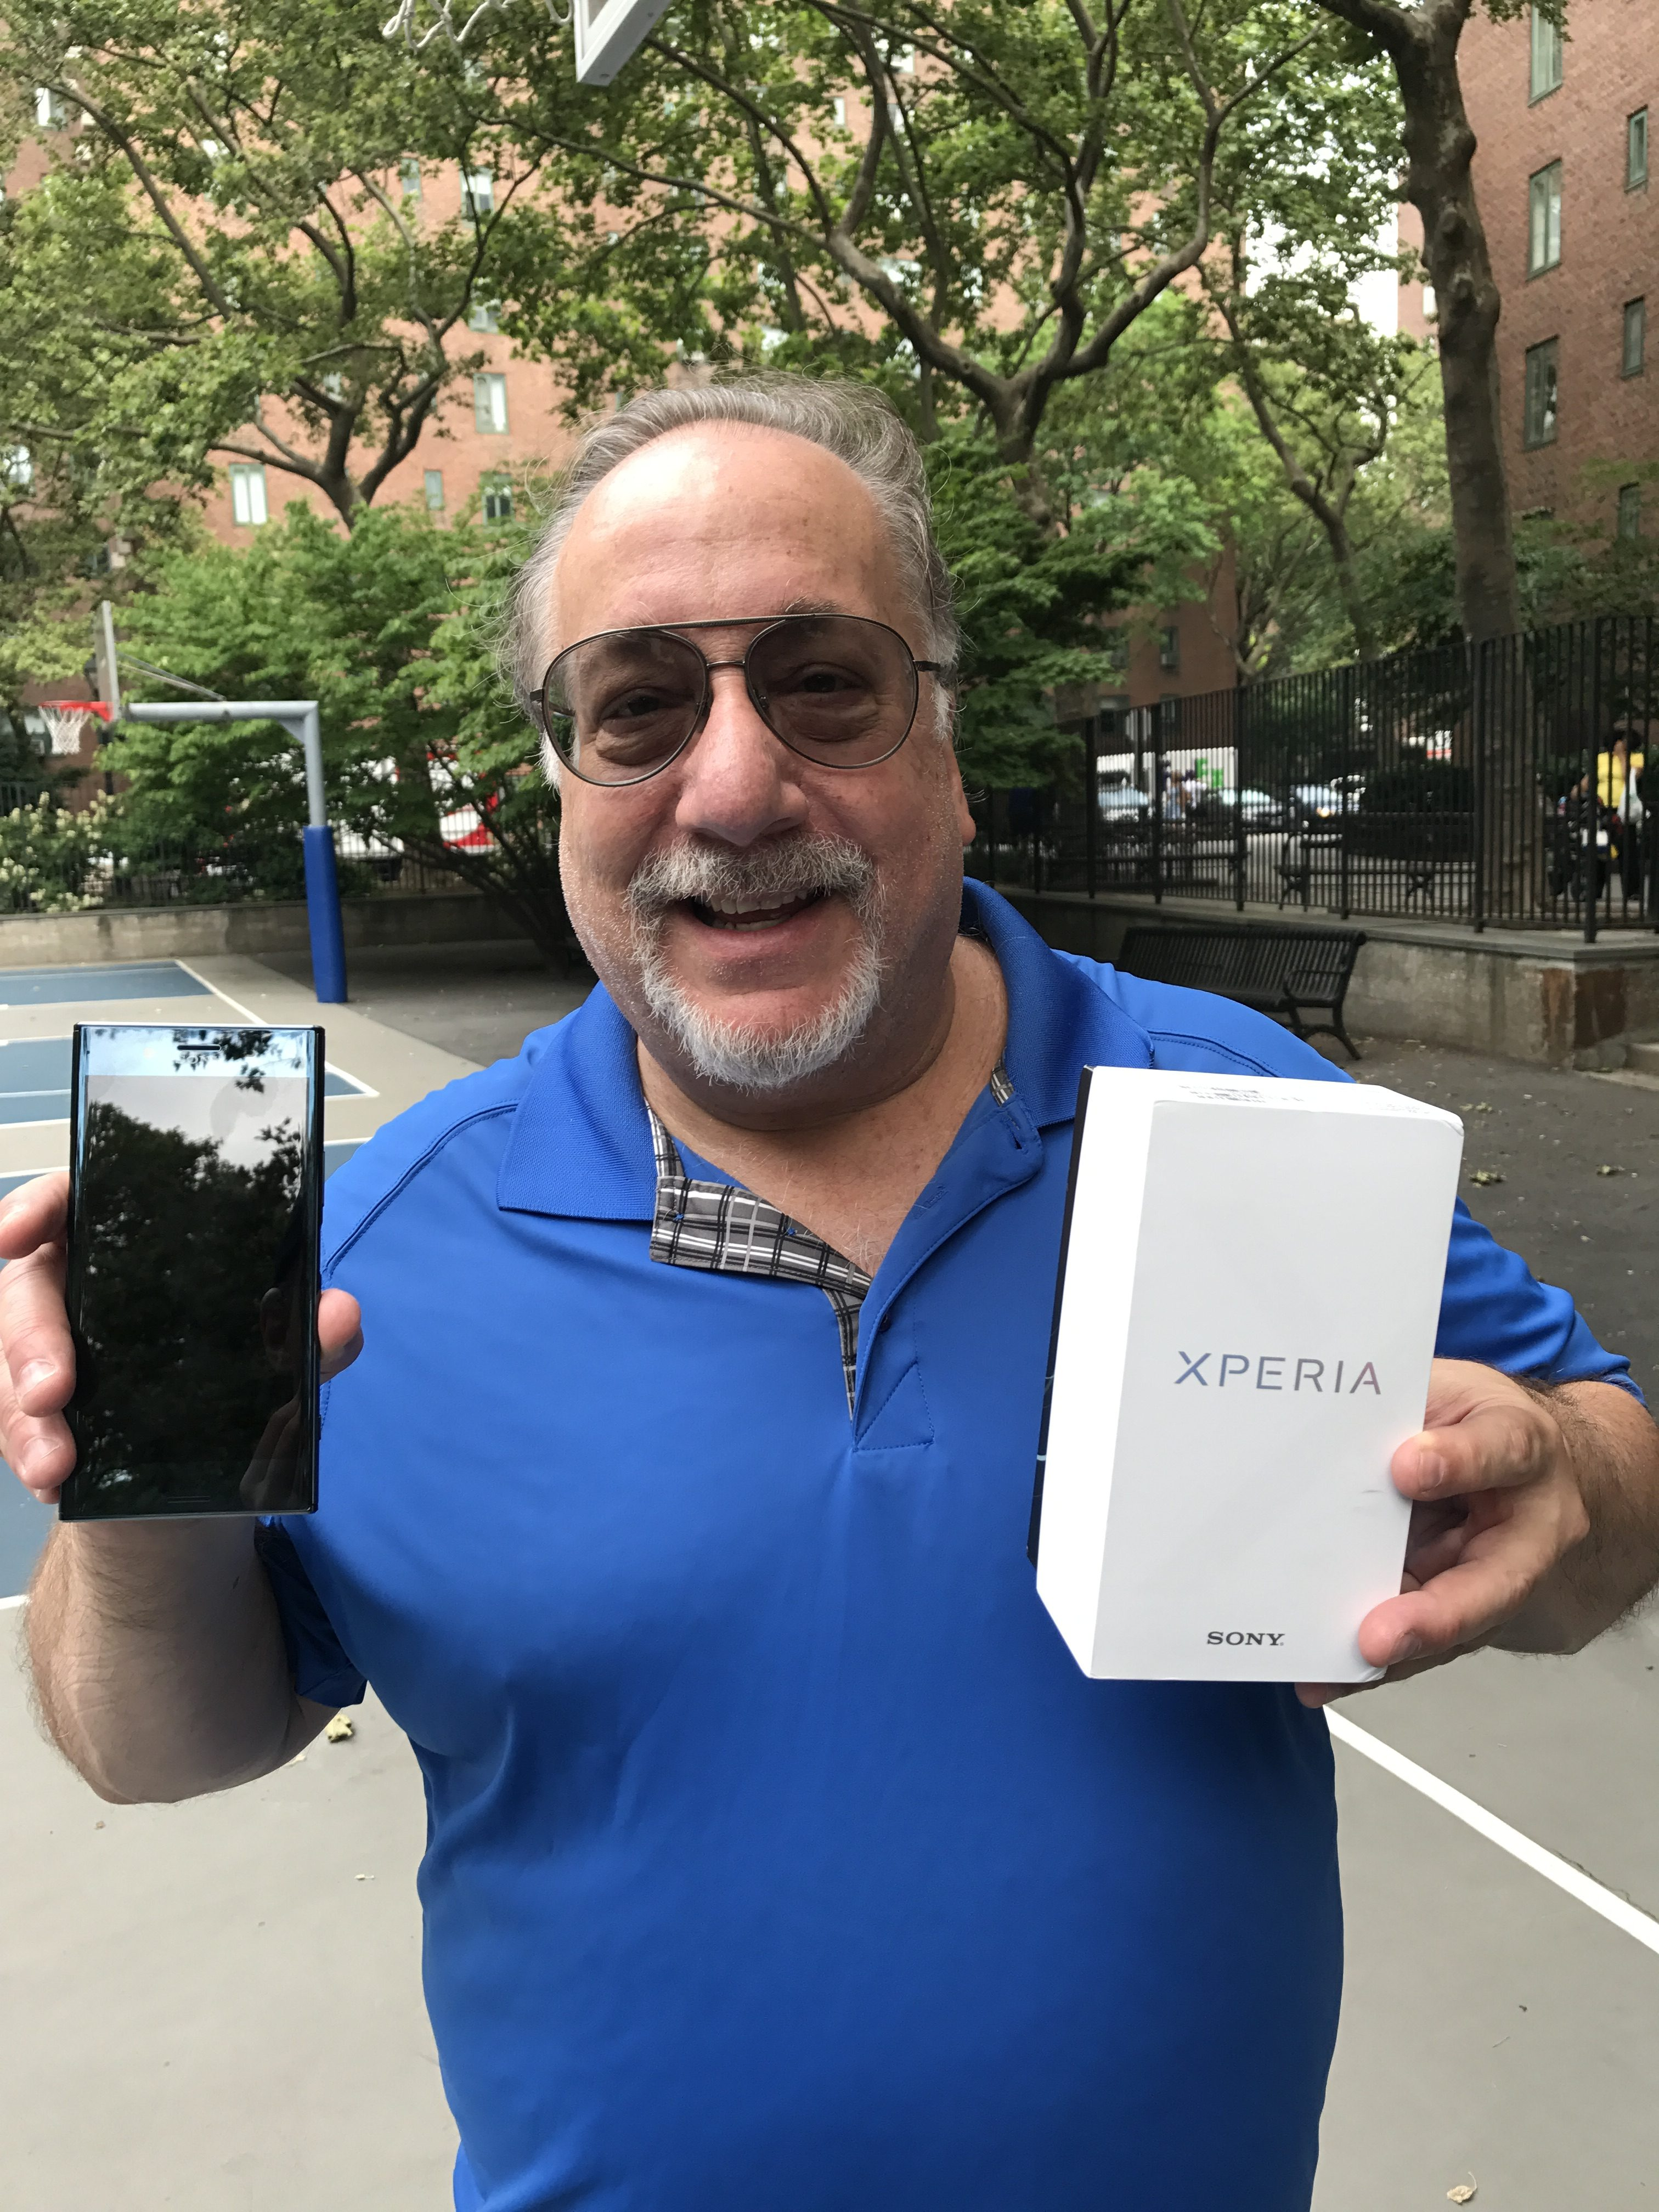 My Slow Motion Video of Paul Filmed With The Sony Xperia Mobile Phone Is Amazing! @BestBuy